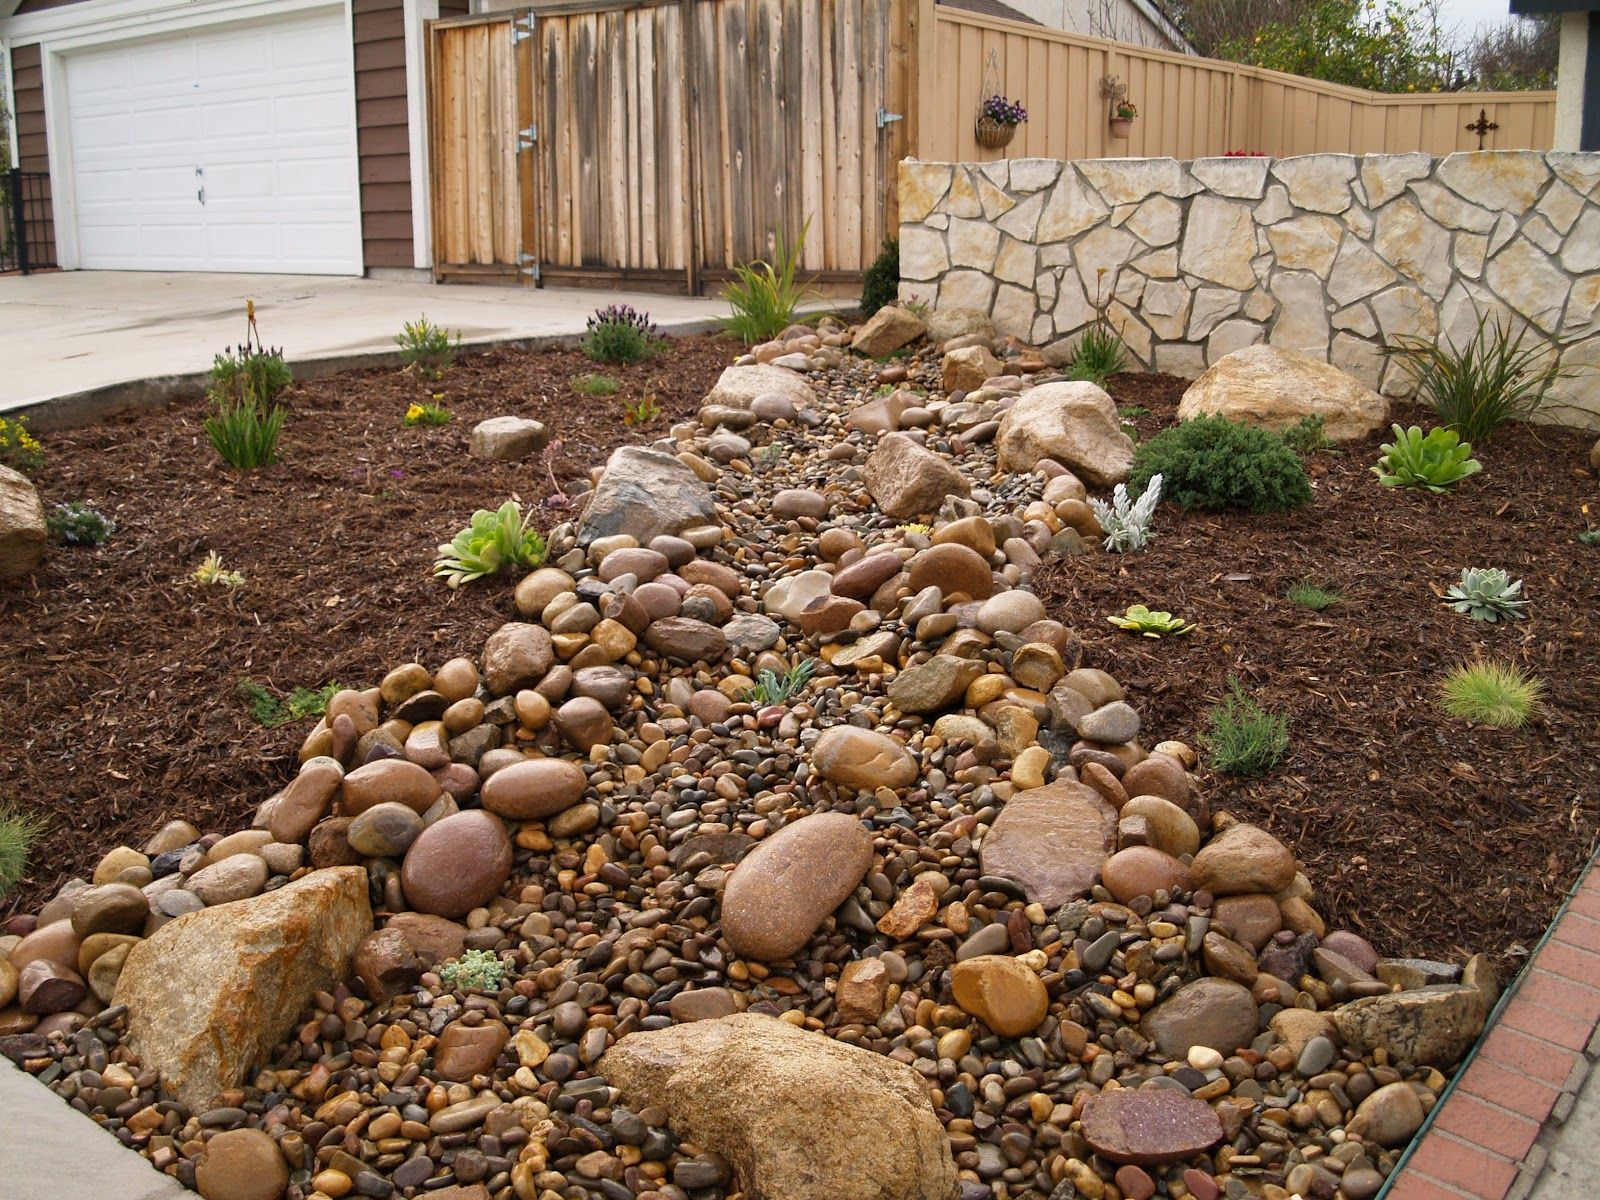 Gravel mulch landscaping two mulch landscaping types for Garden gravel designs